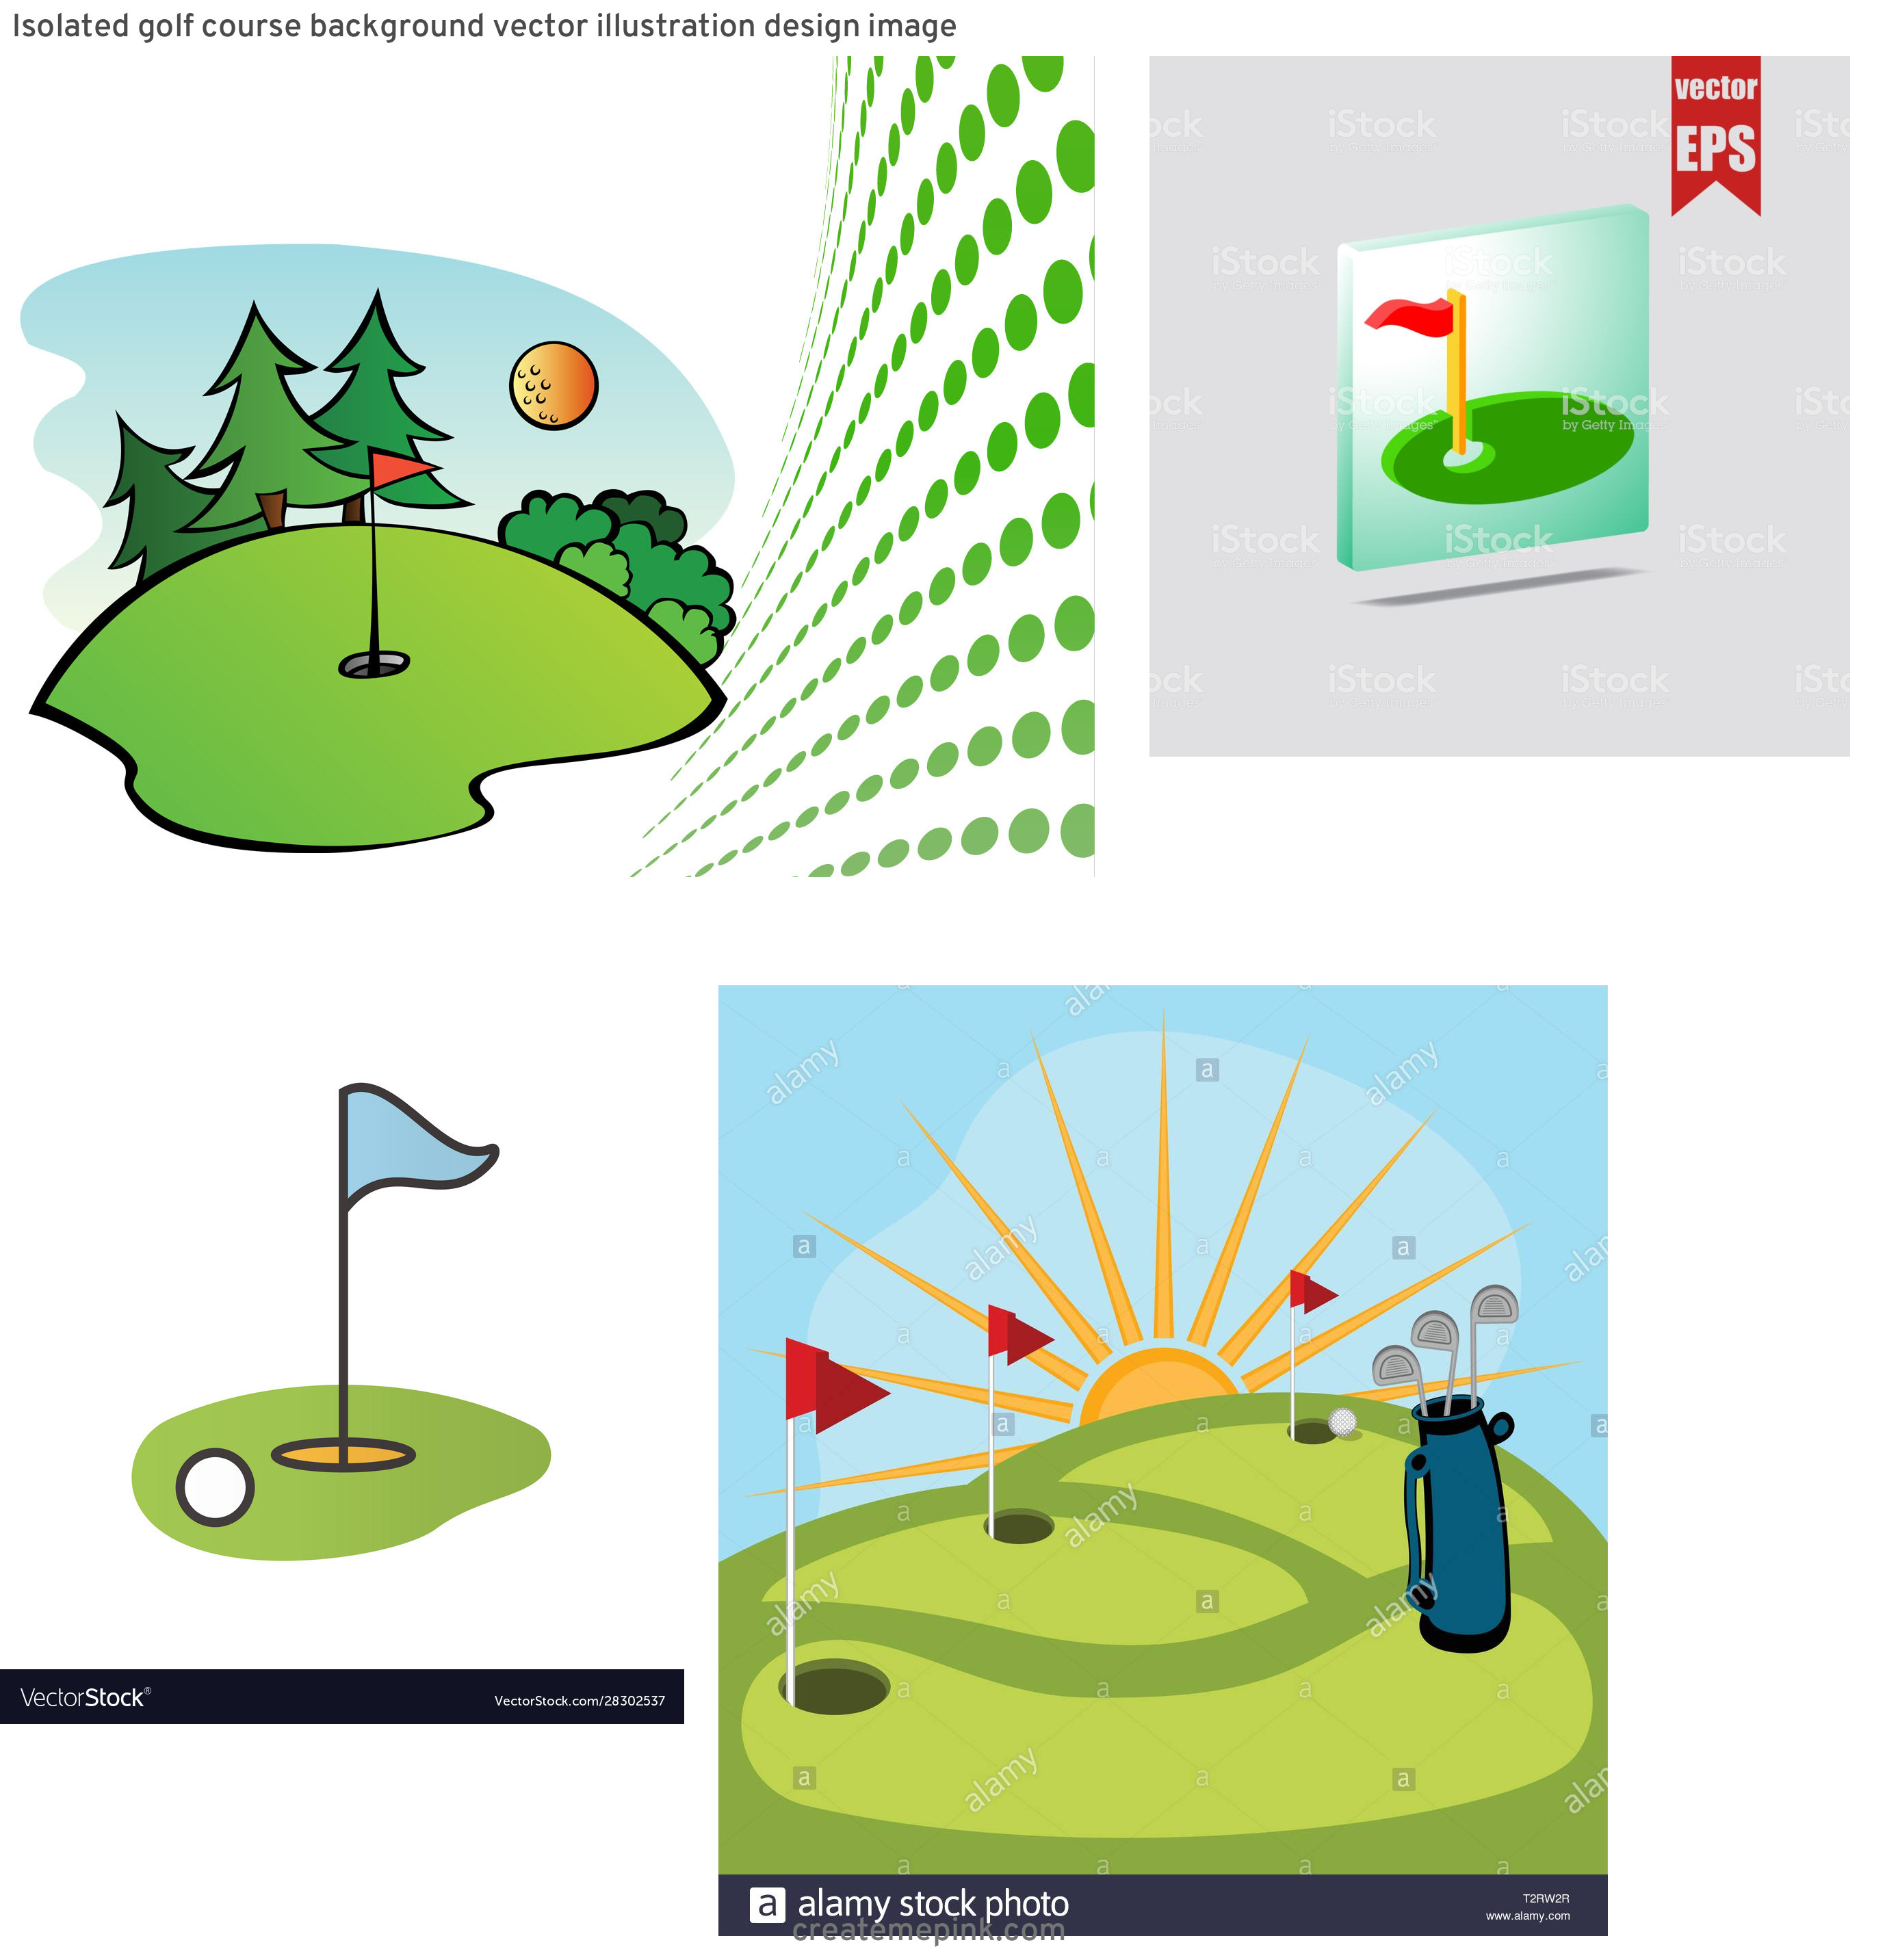 Golf Course Vector Art: Isolated Golf Course Background Vector Illustration Design Image